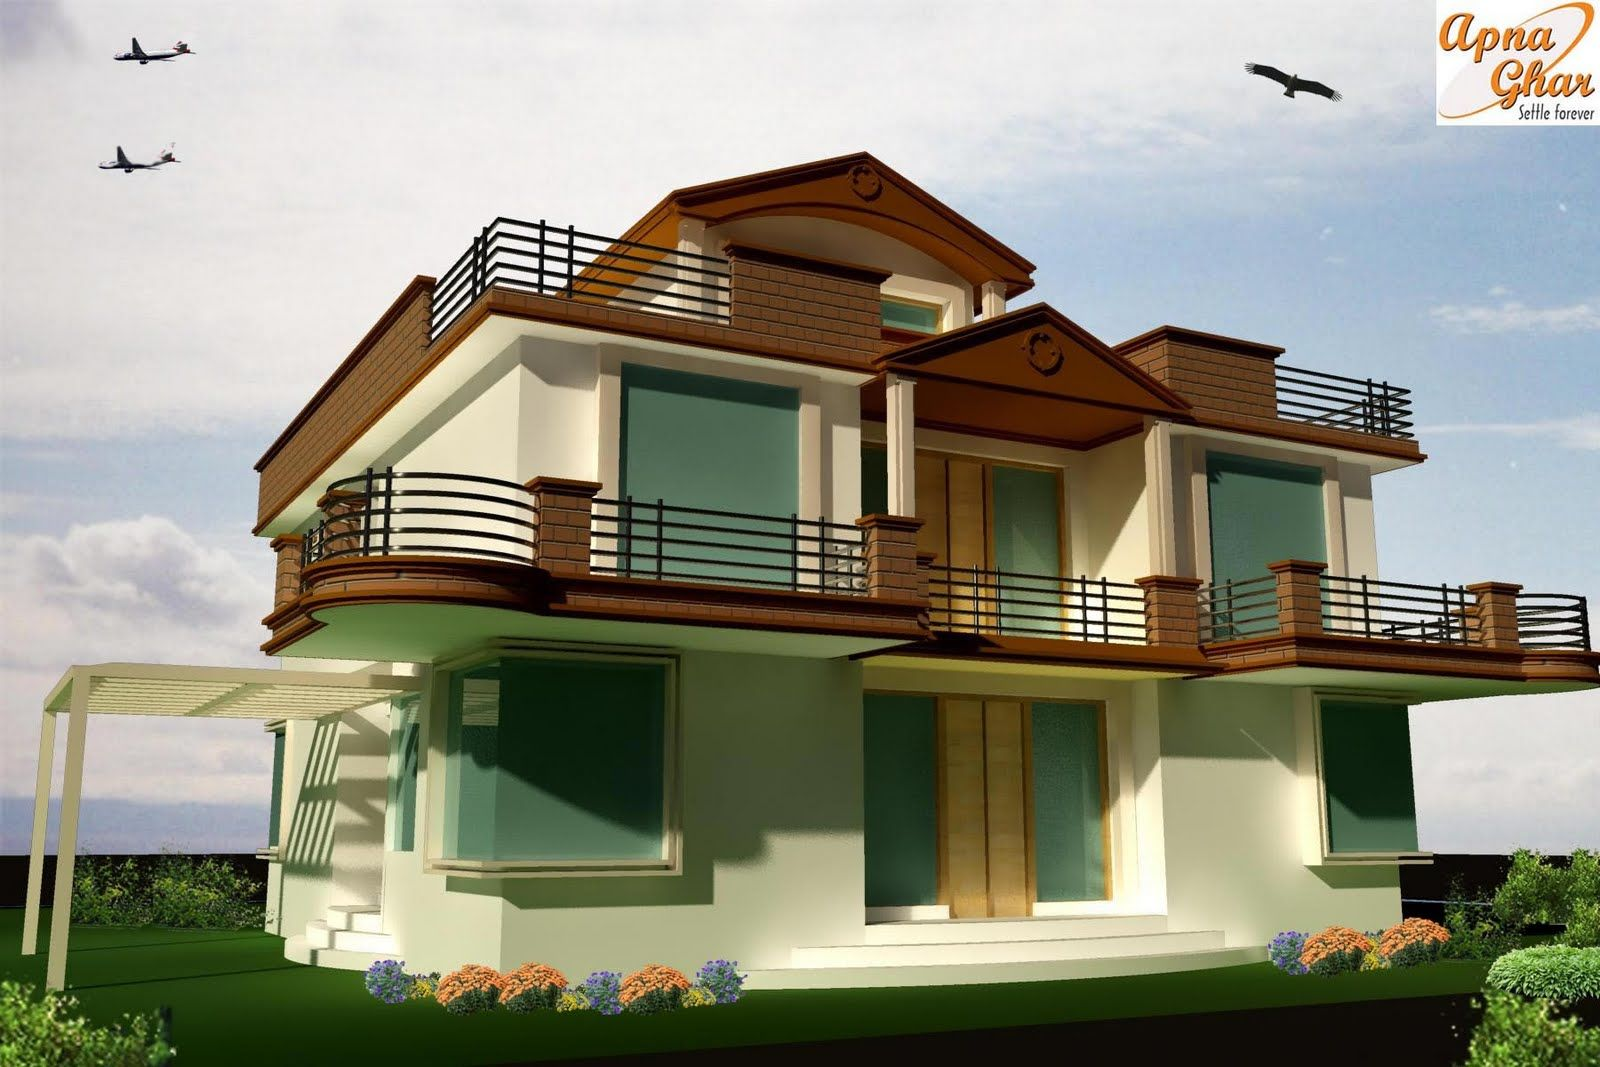 Architectural designs modern architectural house plans for Architecture design house plans 3d